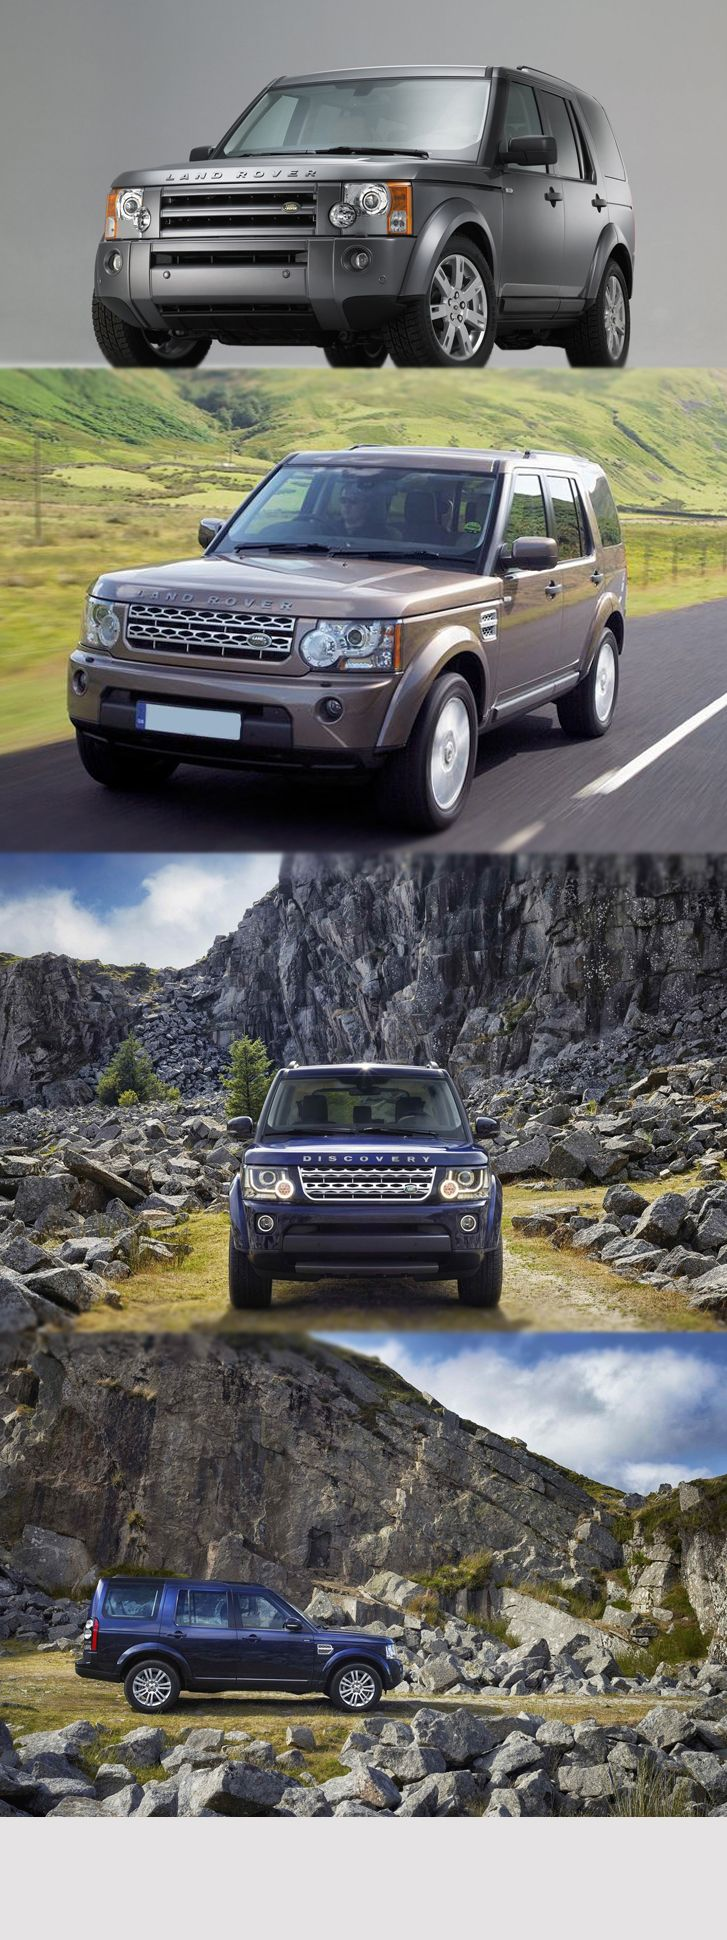 Land rover discovery 3 an iconic off roader of the era for more detail